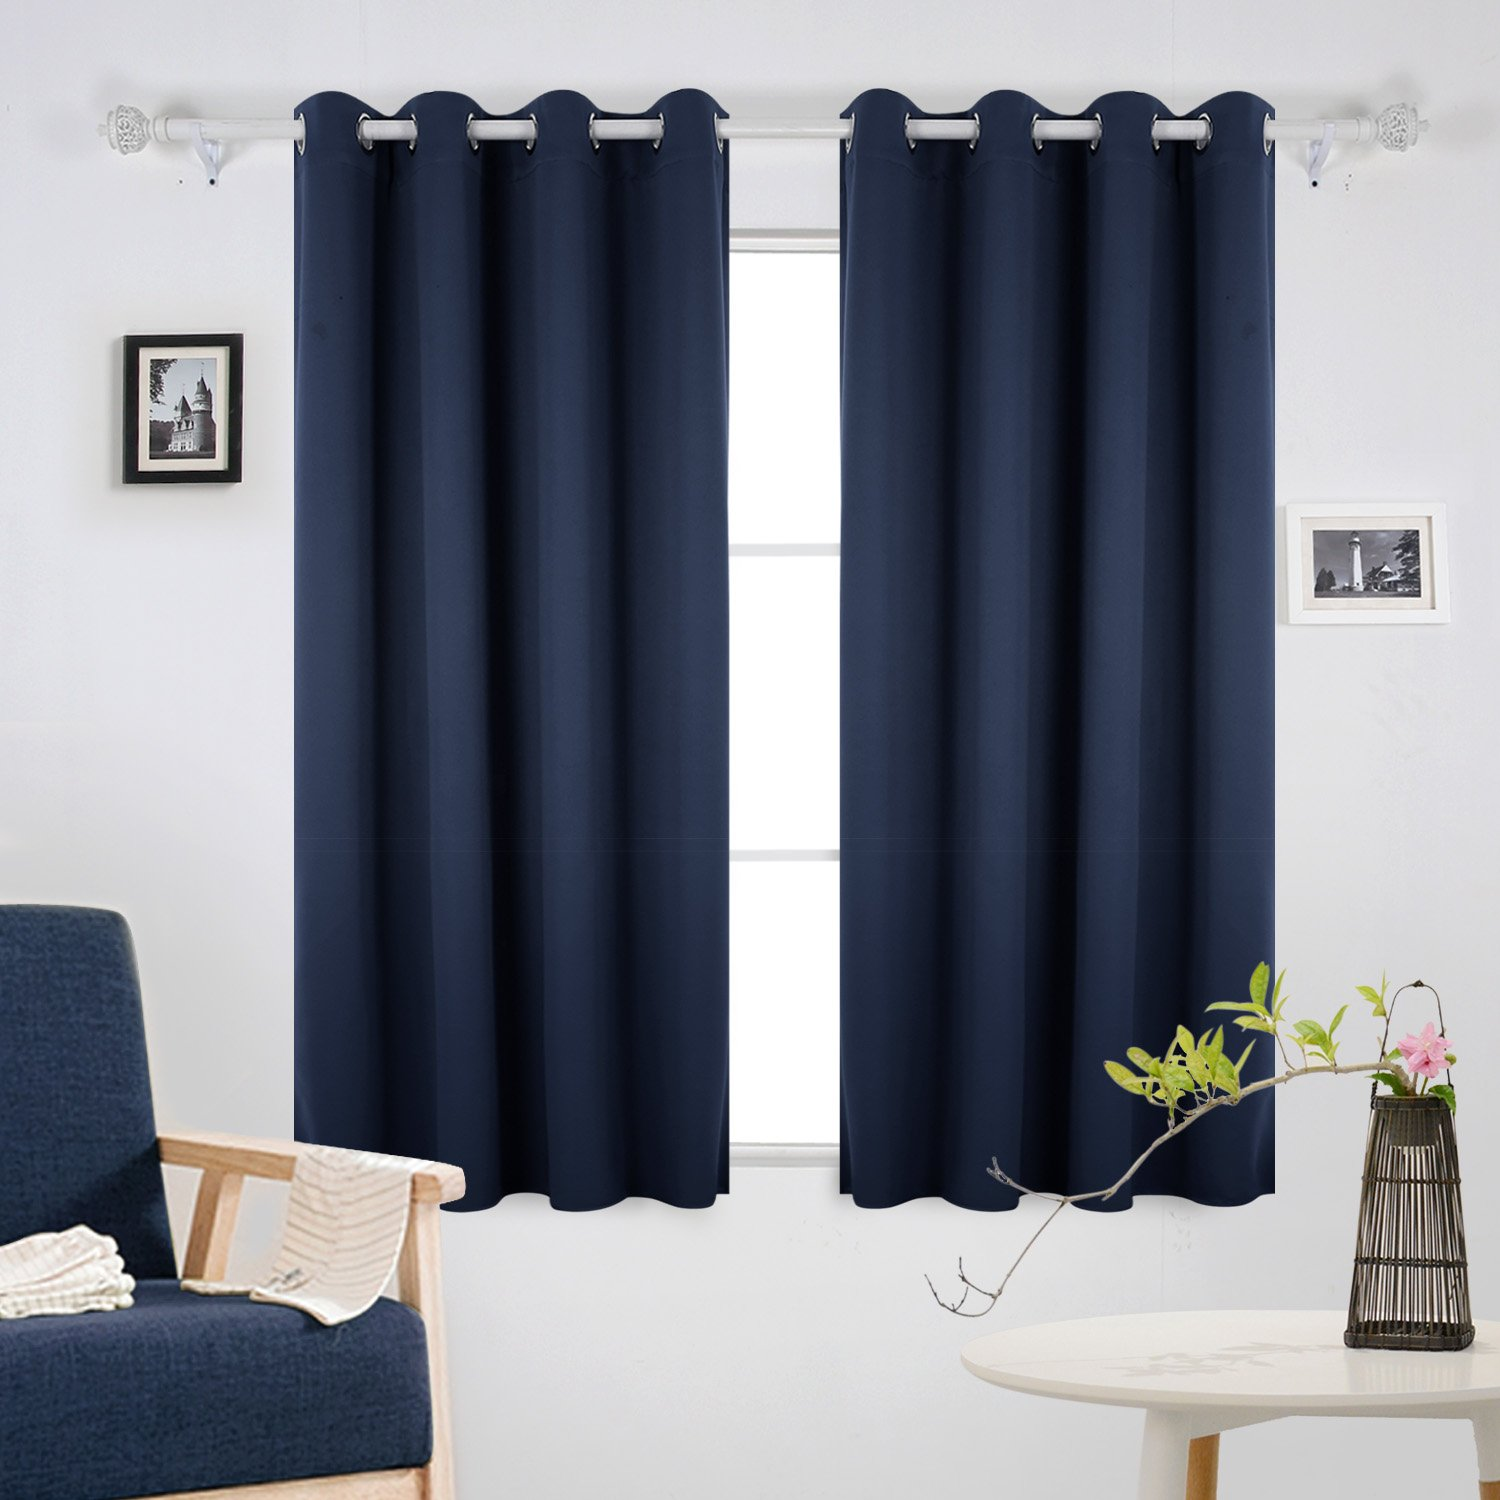 Deconovo Window Thermal Insulated Grommet Blackout Curtains Drapes Panels For Girls Room Navy Blue